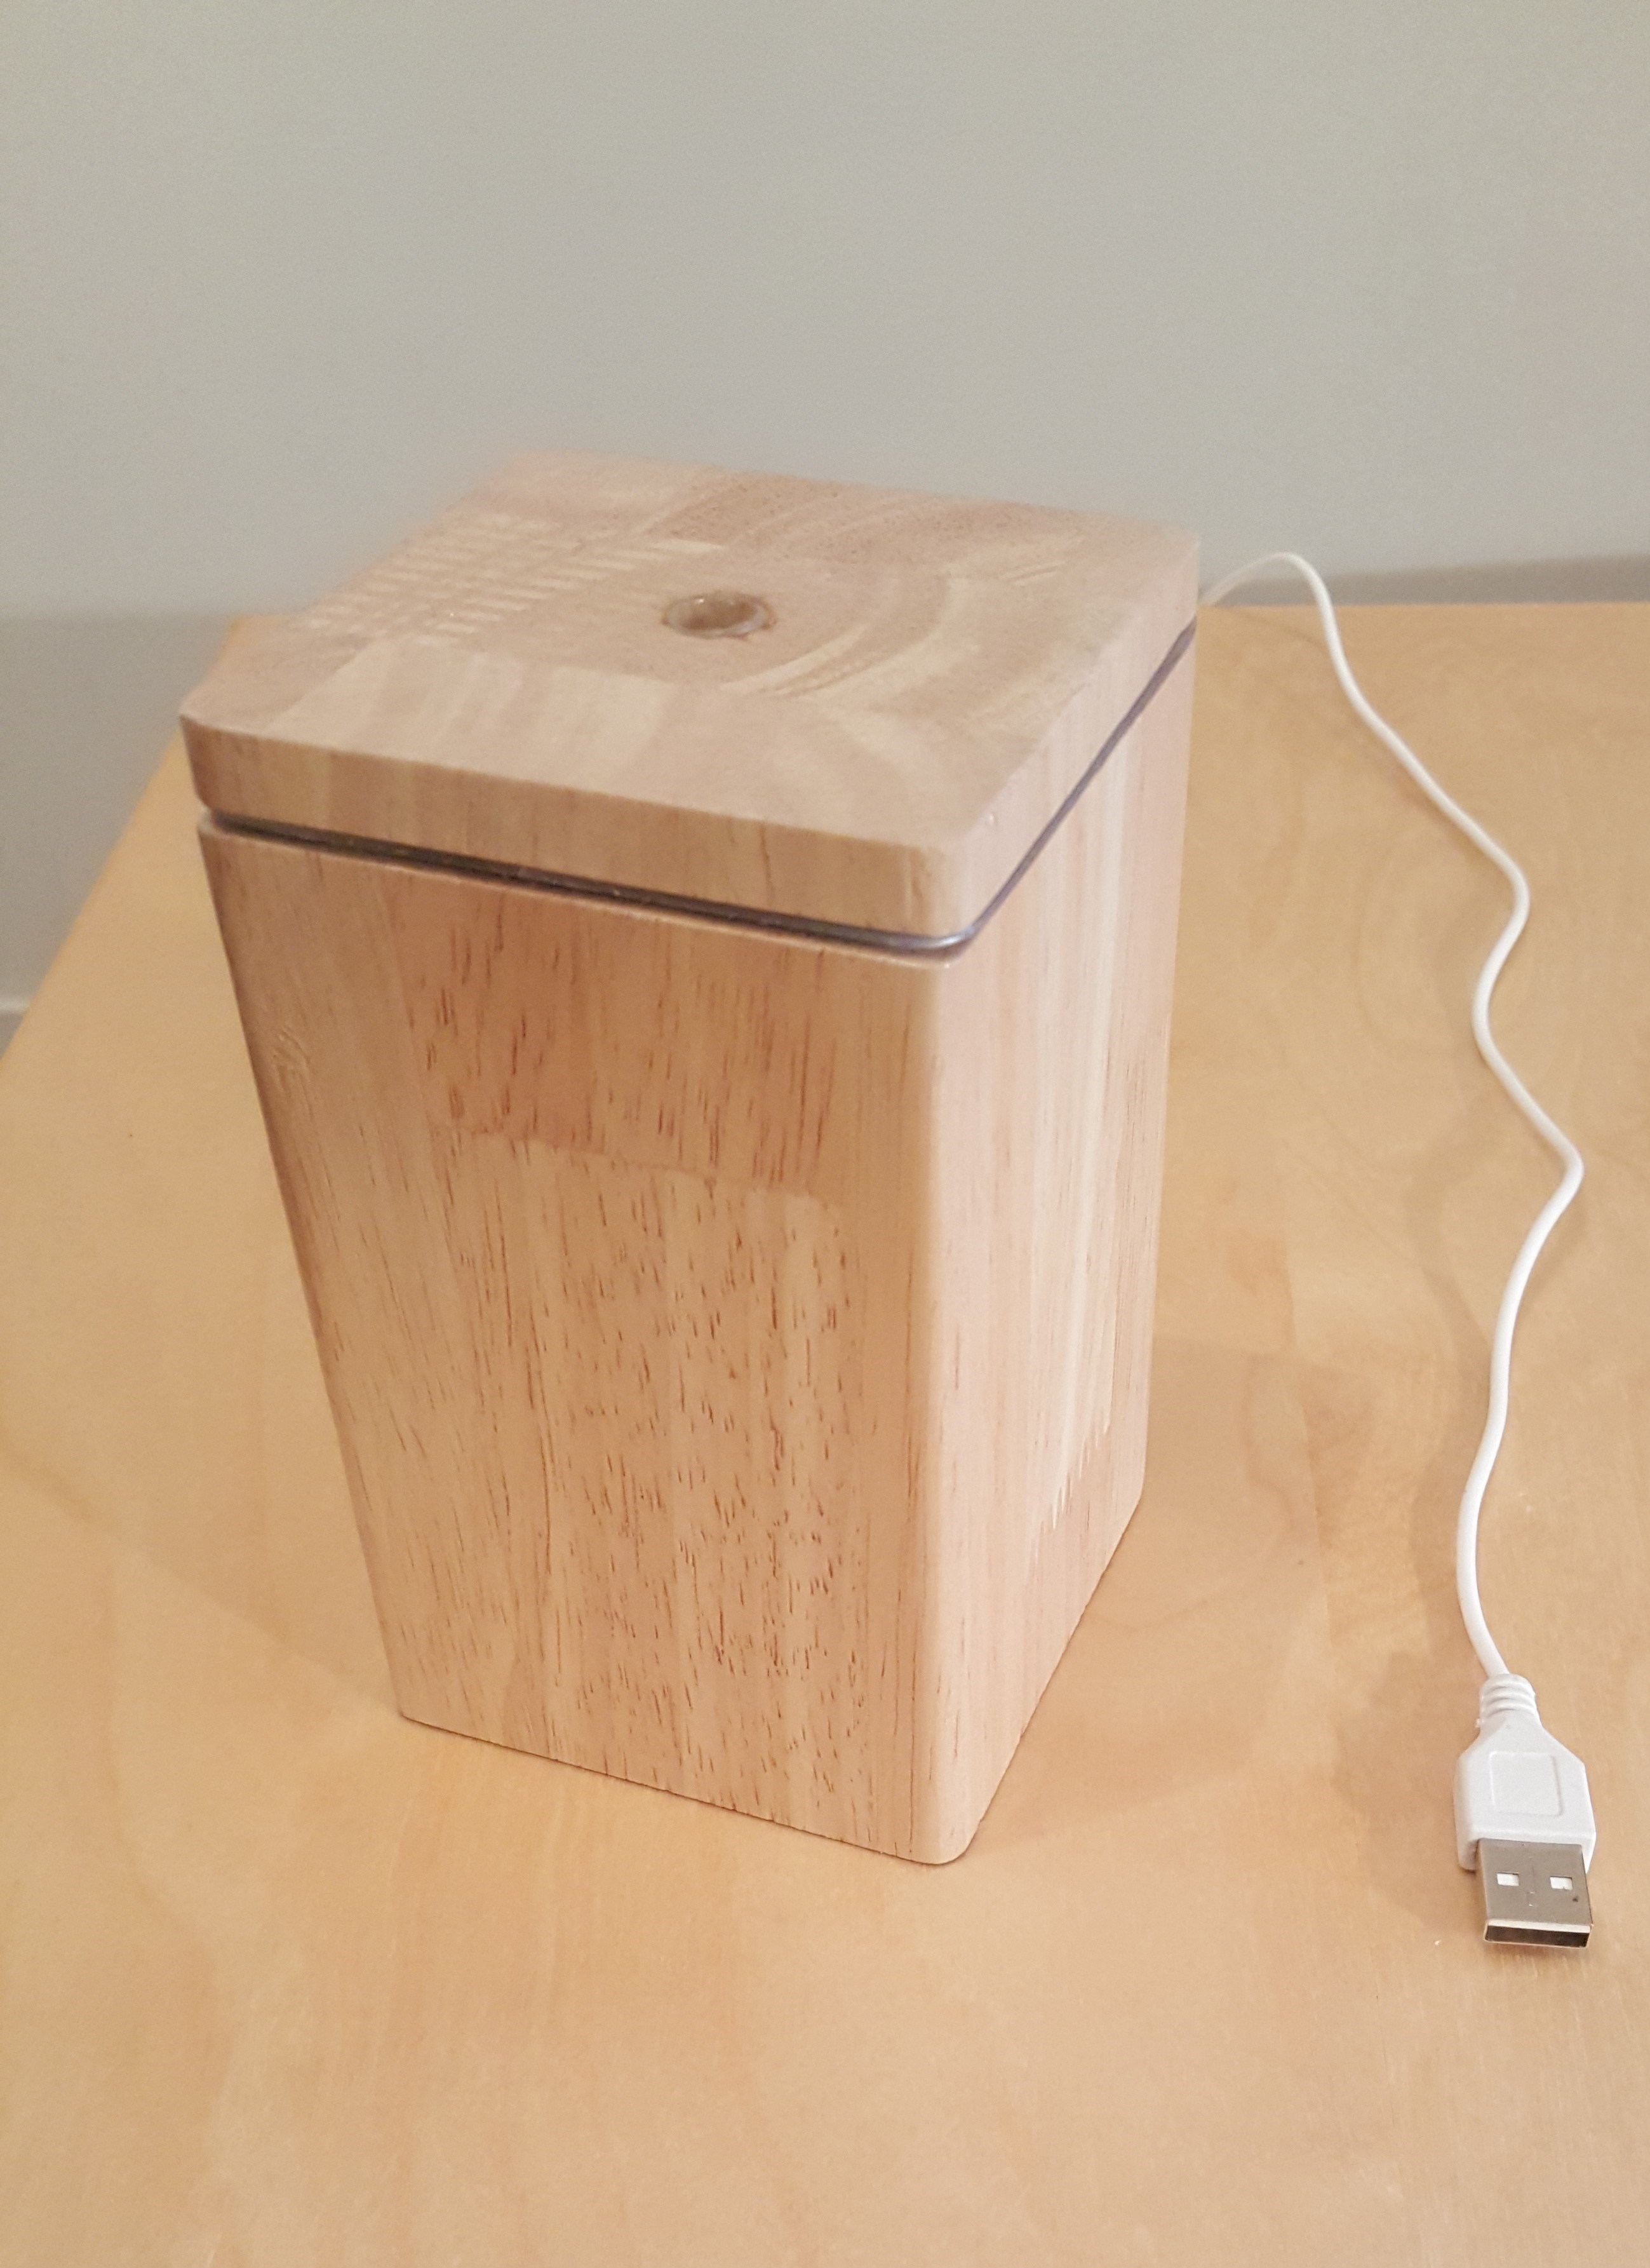 Ultrasonic Essential Oil Diffuser Mysensors Forum High Frequency Generator Circuithigh 0 1456867650174 20160301 220334